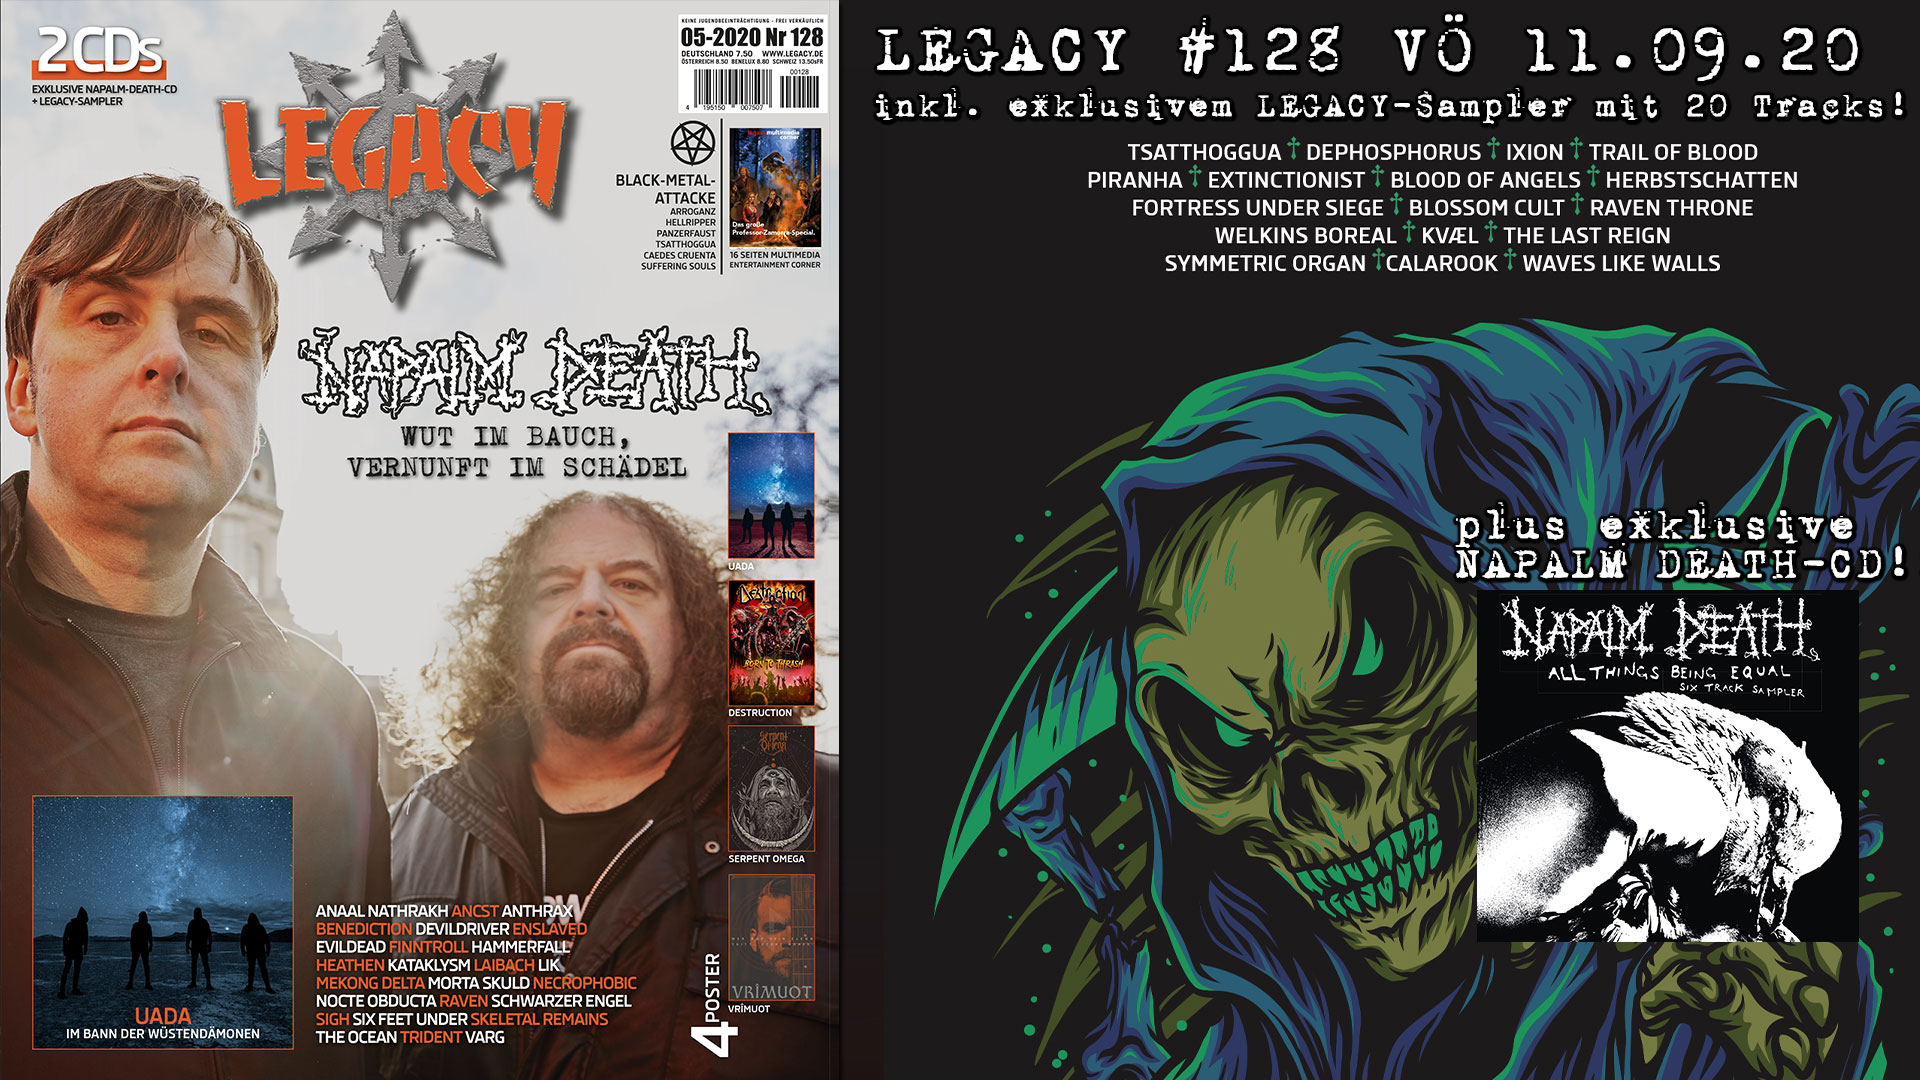 LEGACY #128 out 11.09.2020